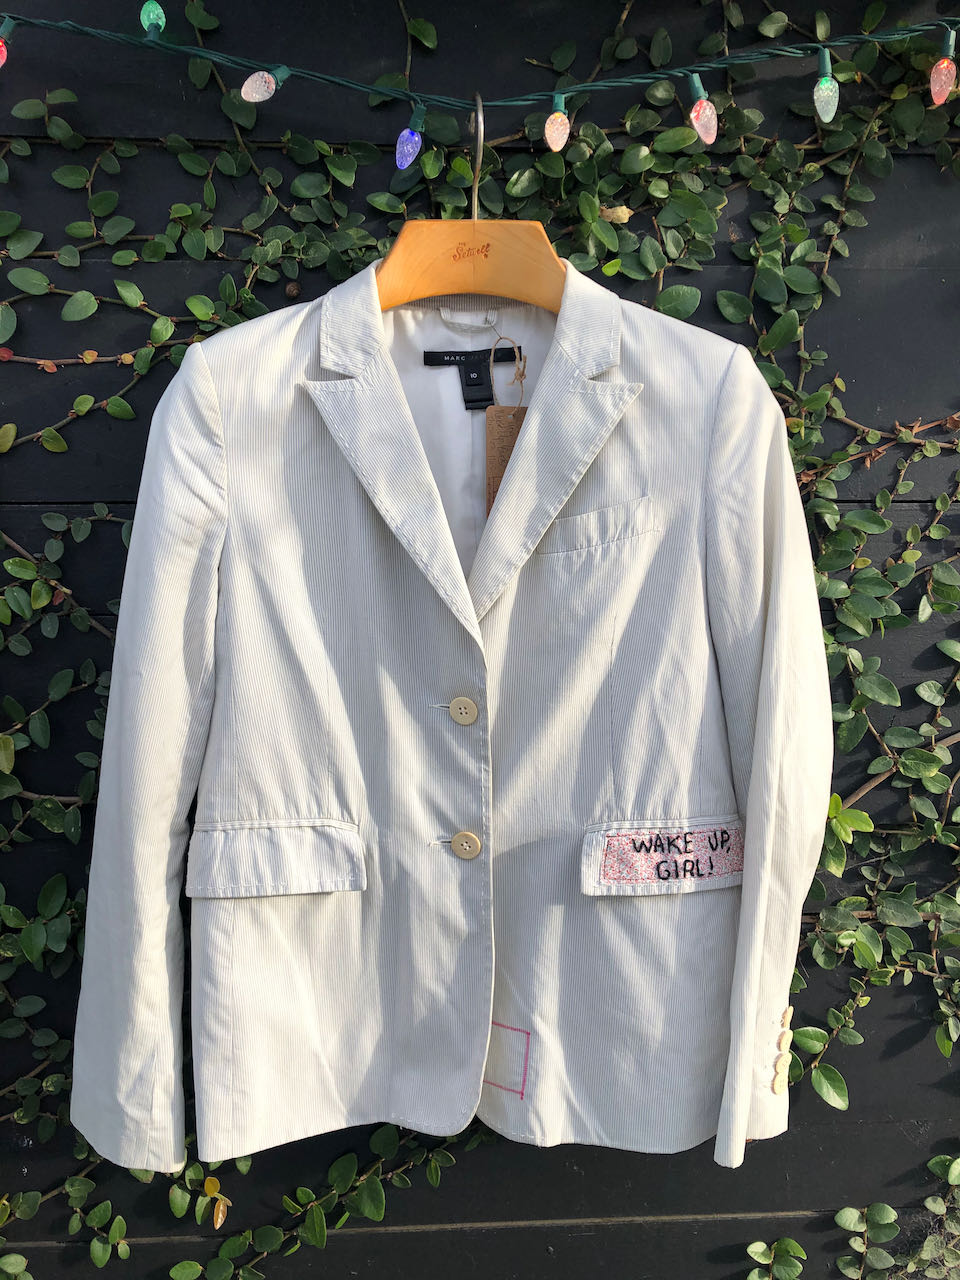 Wake Up Girl Blazer in White